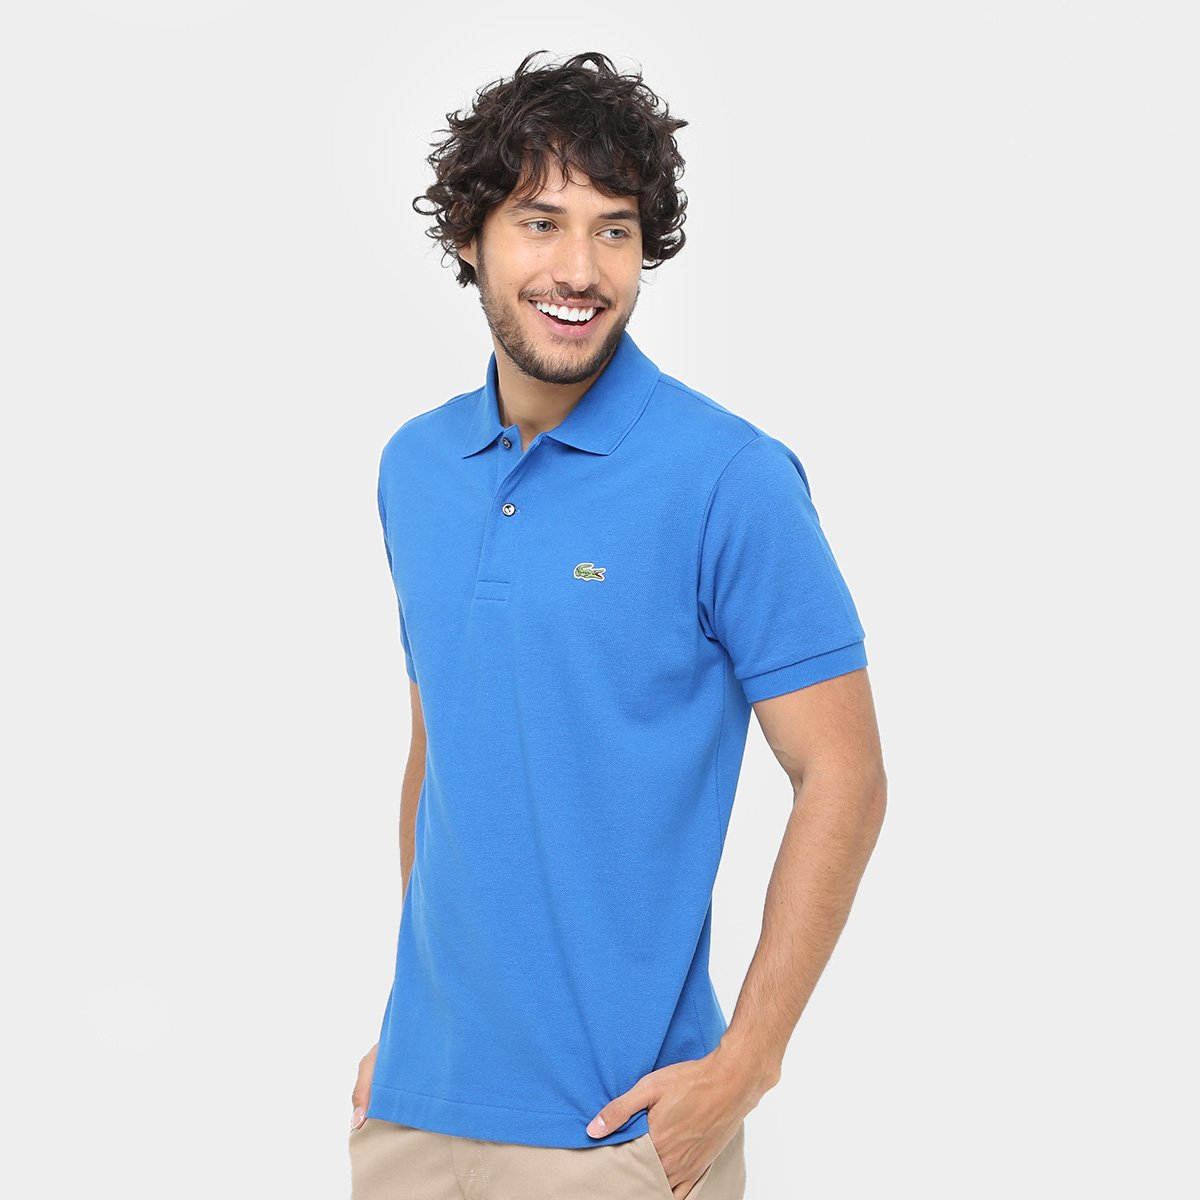 Camisa Polo Lacoste Piquet Original Fit Masculina 2268cedc5f